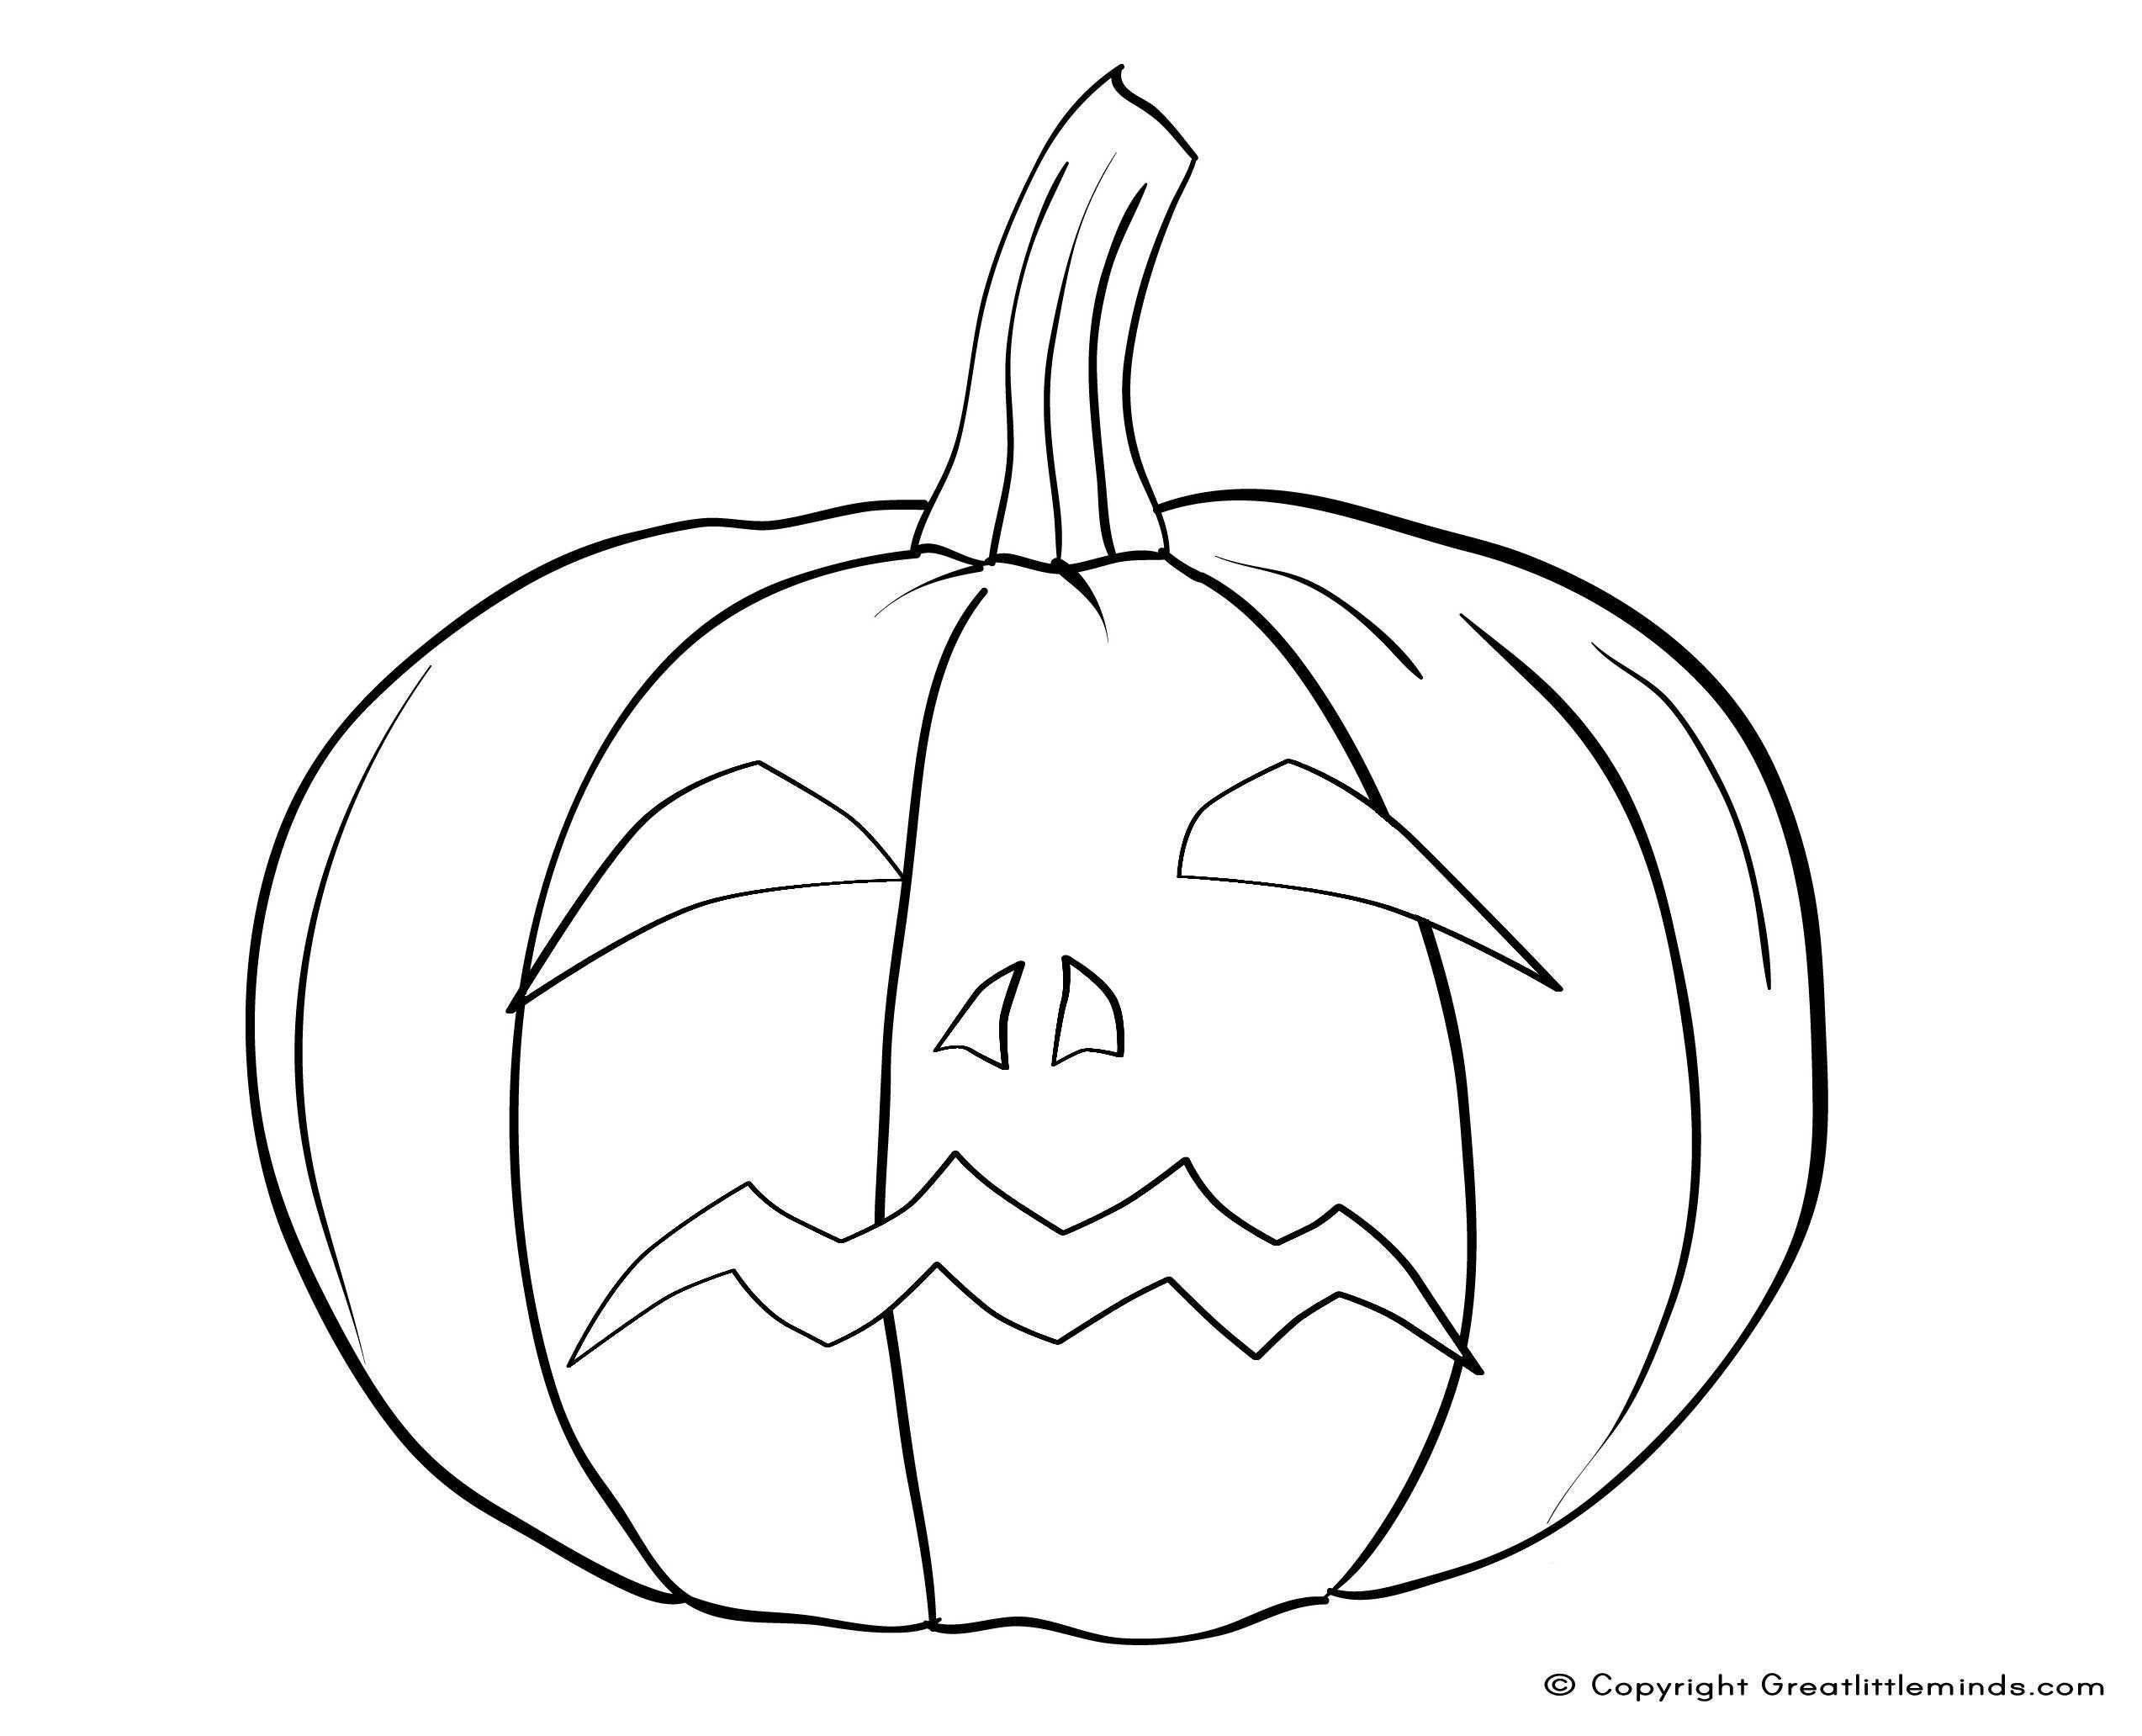 26 Best Of Jack O Lantern Coloring Page In 2020 Cute Coloring